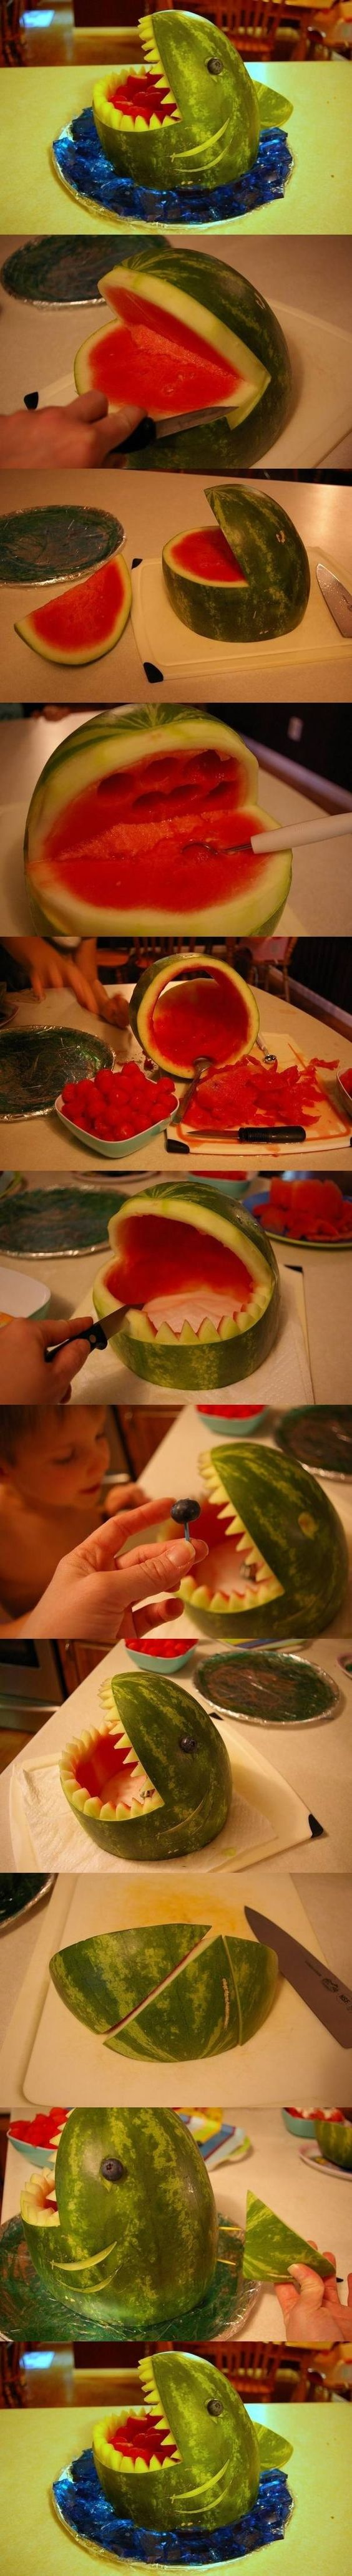 DIY Watermelon Shark diy craft crafts summer crafts how to tutorial party ideas party crafts party favors food art: